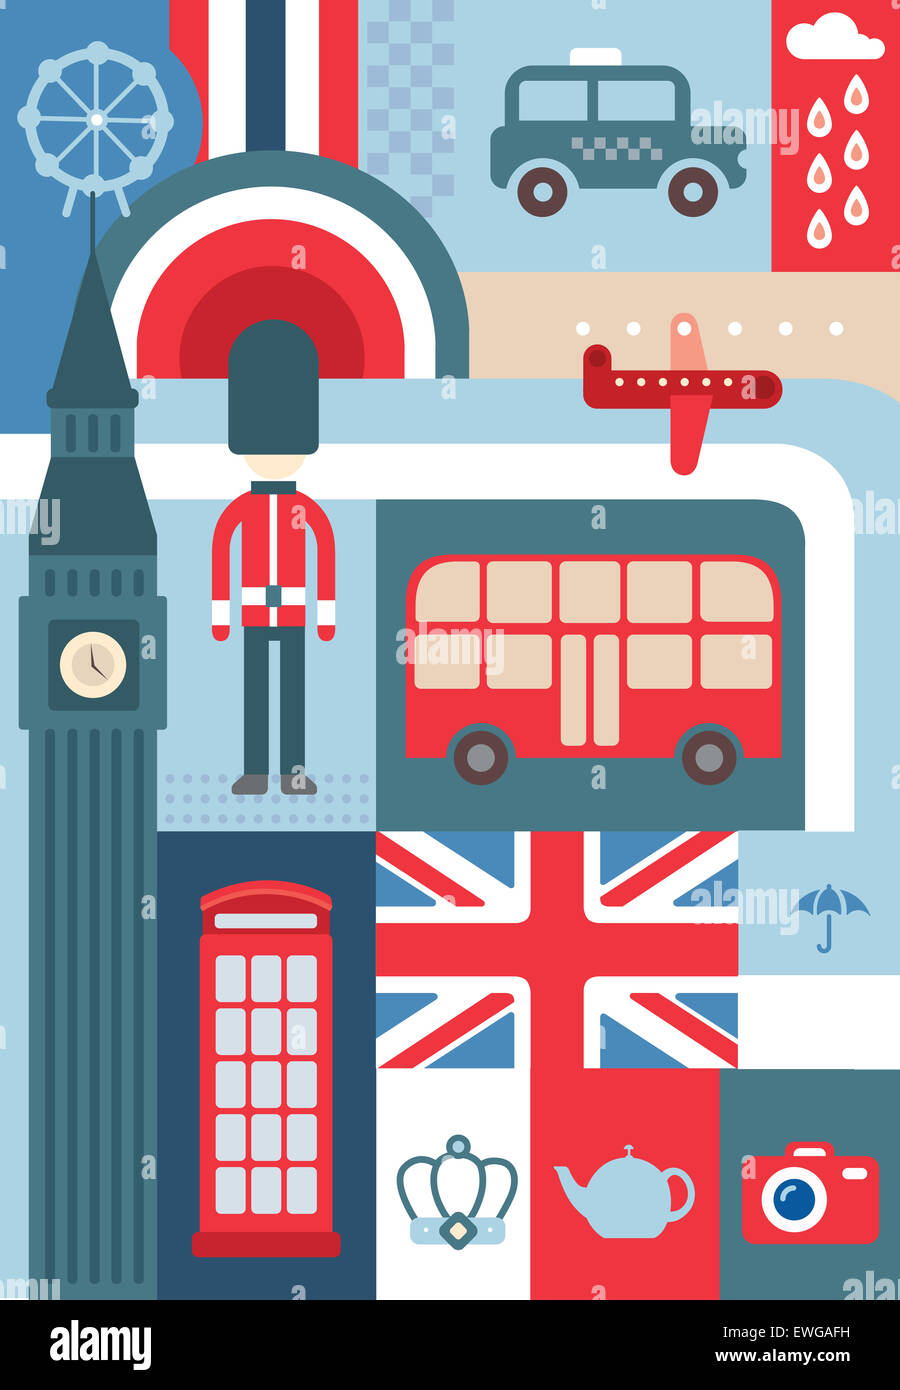 Illustrative collage representing city life in London - Stock Image